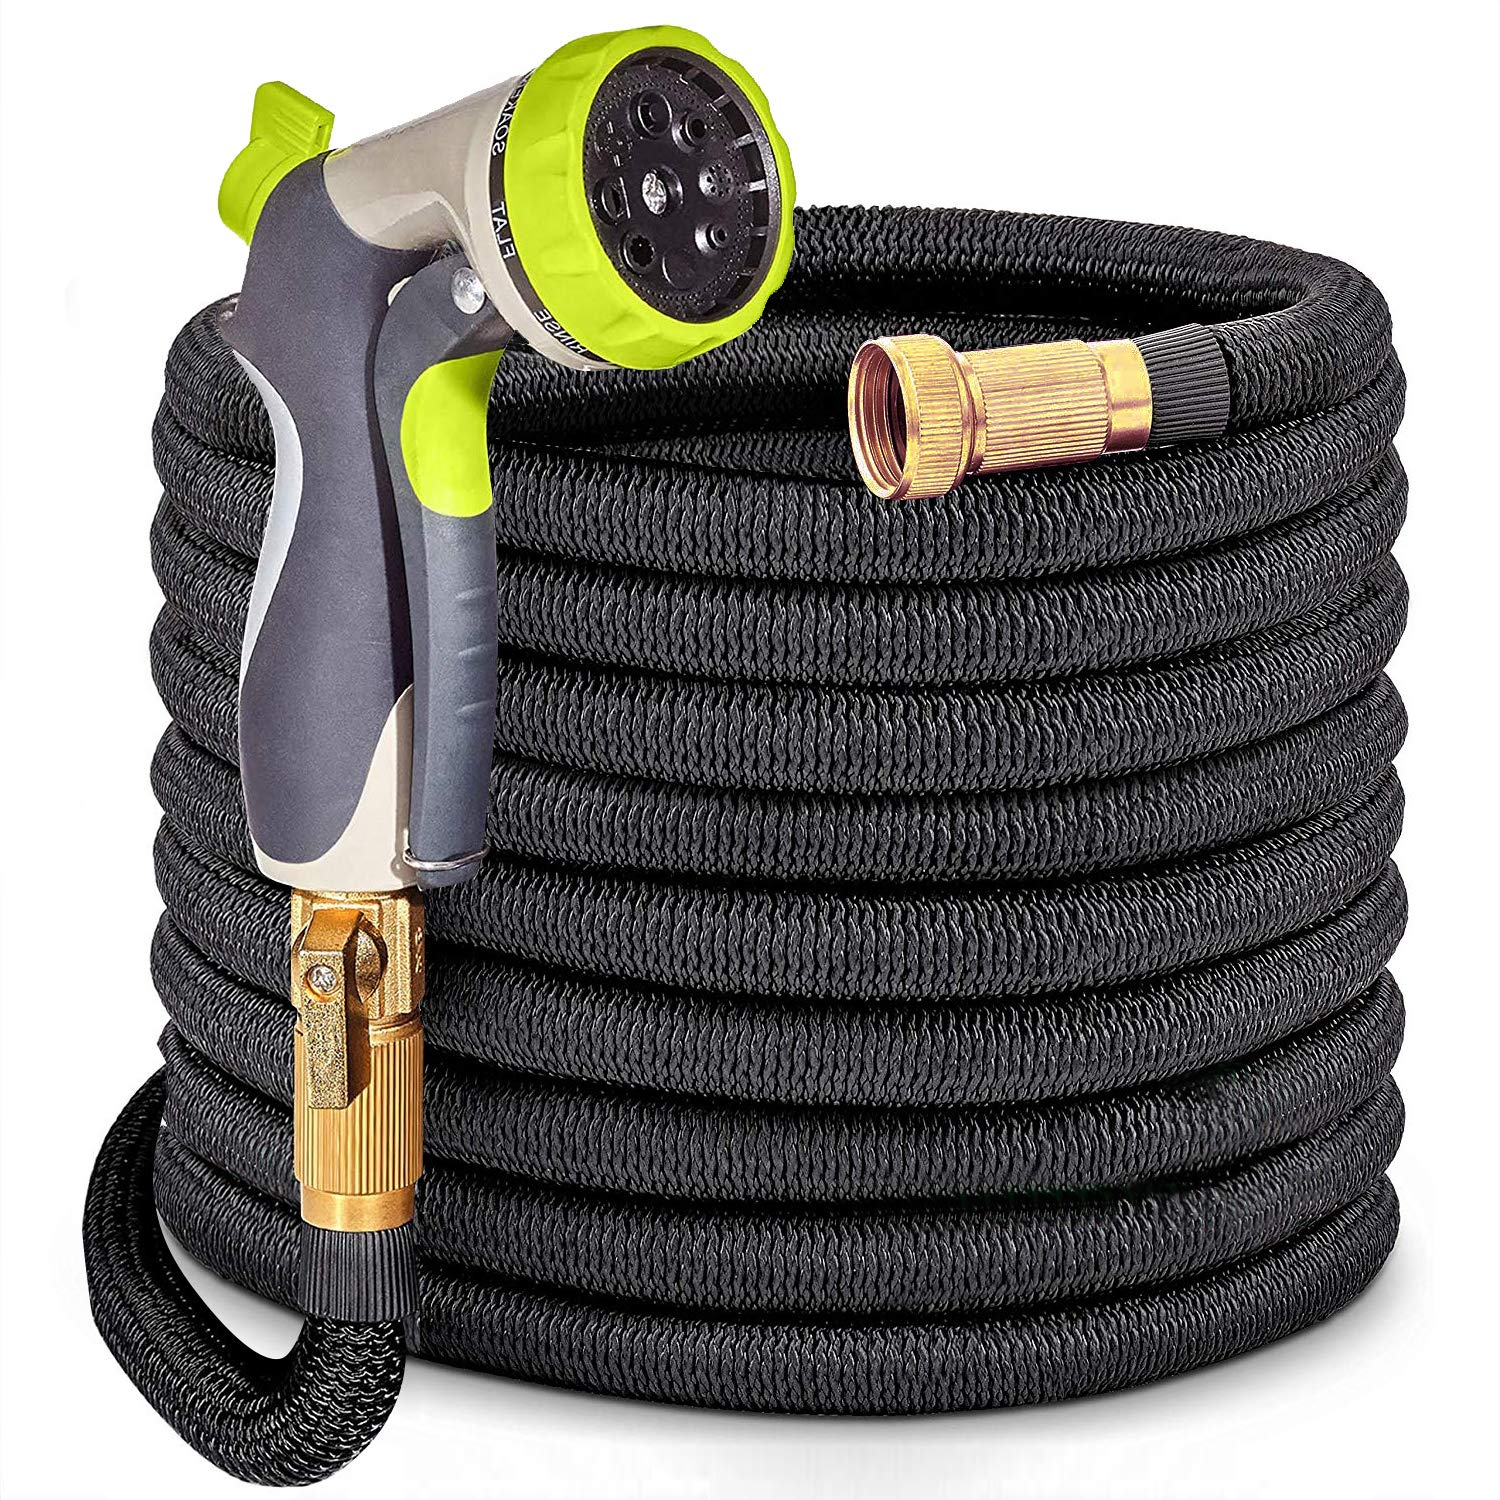 HYRIXDIRECT 50ft Garden Hose Lightweight Durable Flexible Water Hose with 3/4 Nozzle Solid Brass Connector and 8 Pattern High Pressure Water Spray Nozzle Expanding Hoses Up to 50 Feet (Black, 50)